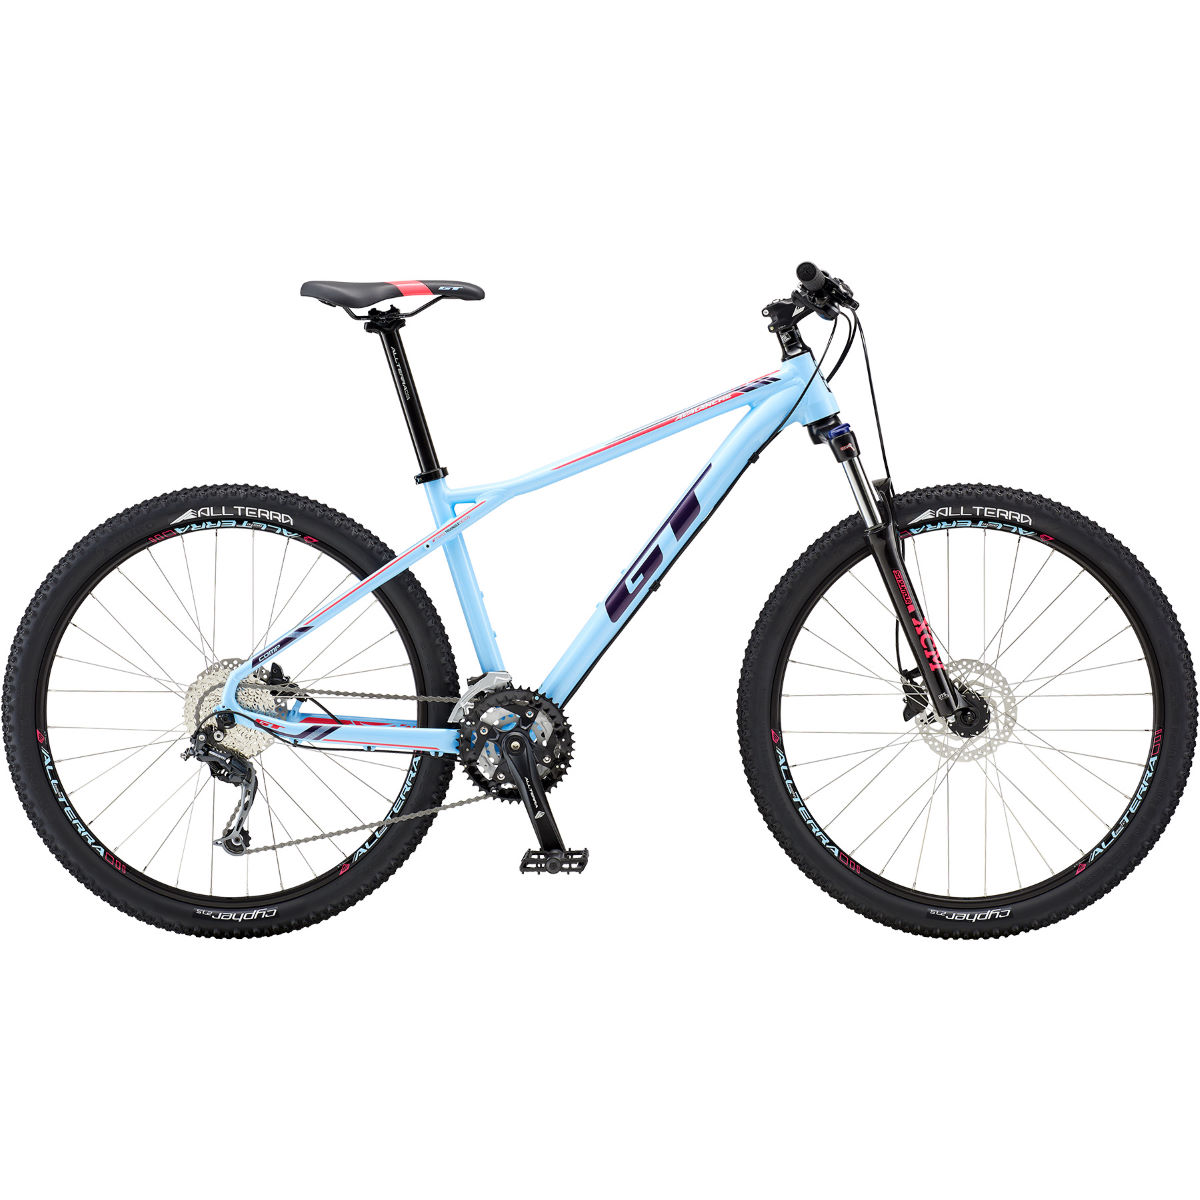 VTT semi-rigide Femme GT Avalanche Comp 27.5 - Large Stock Bike